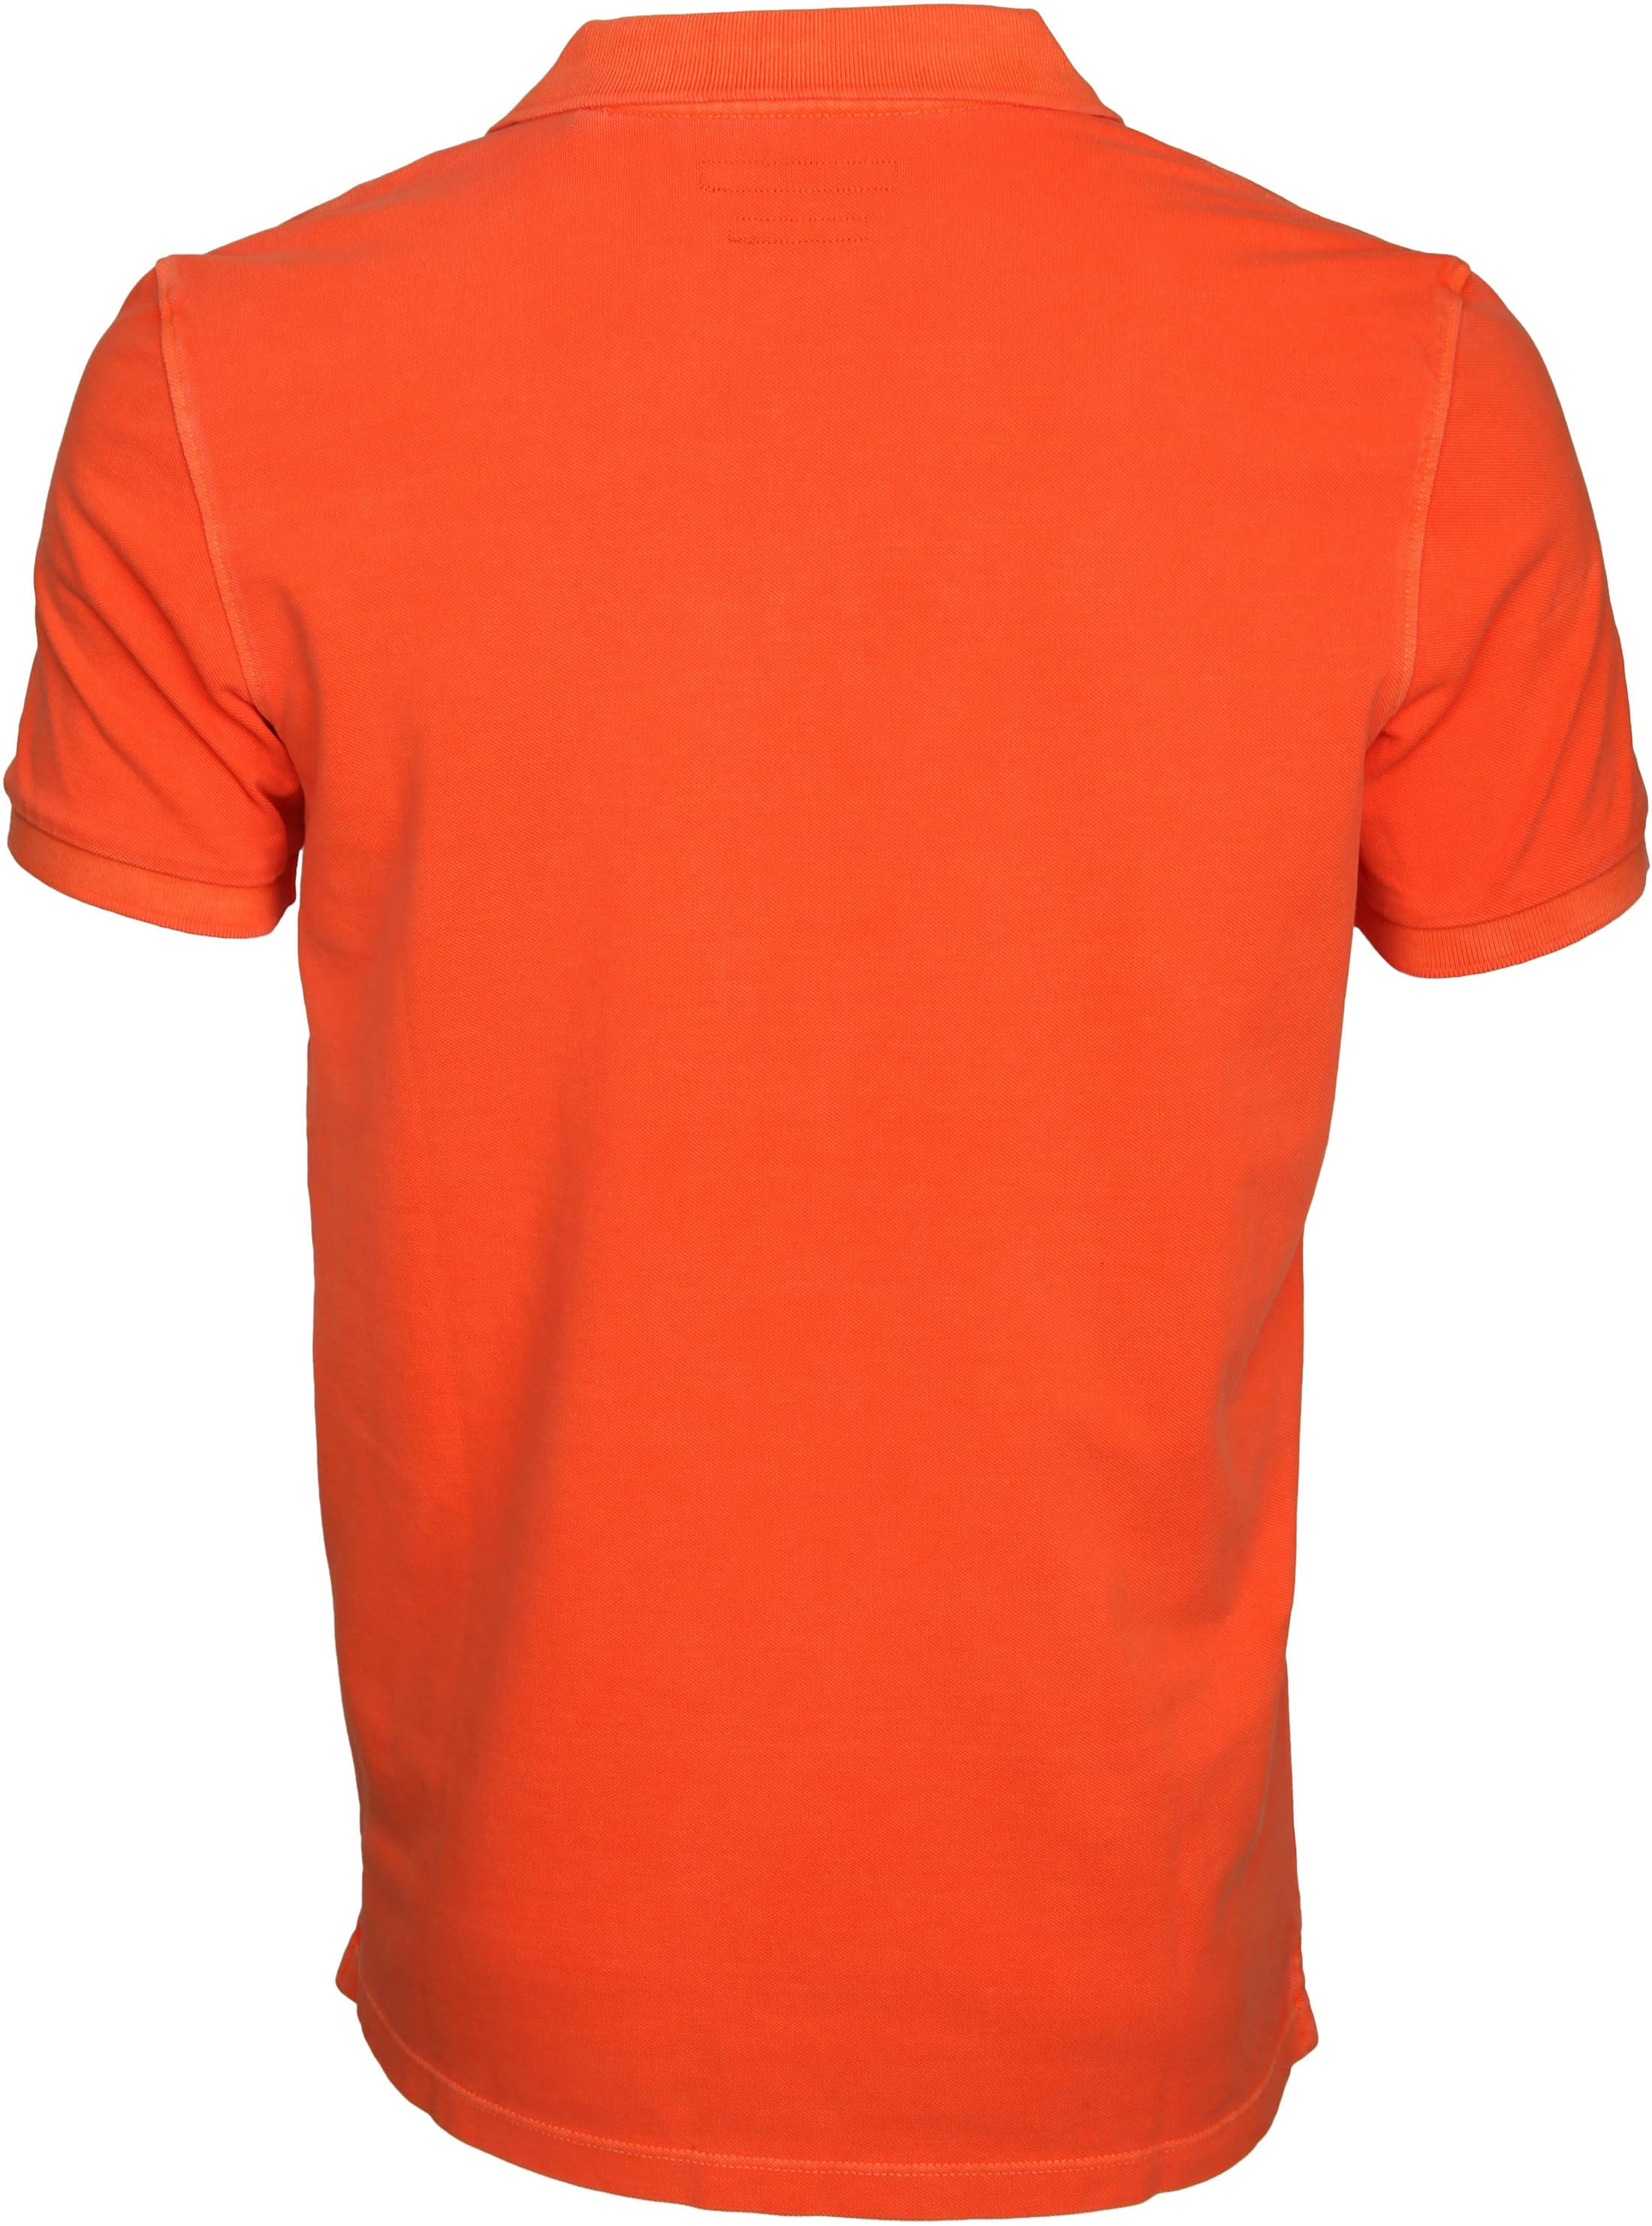 Marc O'Polo Poloshirt Garment Dyed Orange foto 2